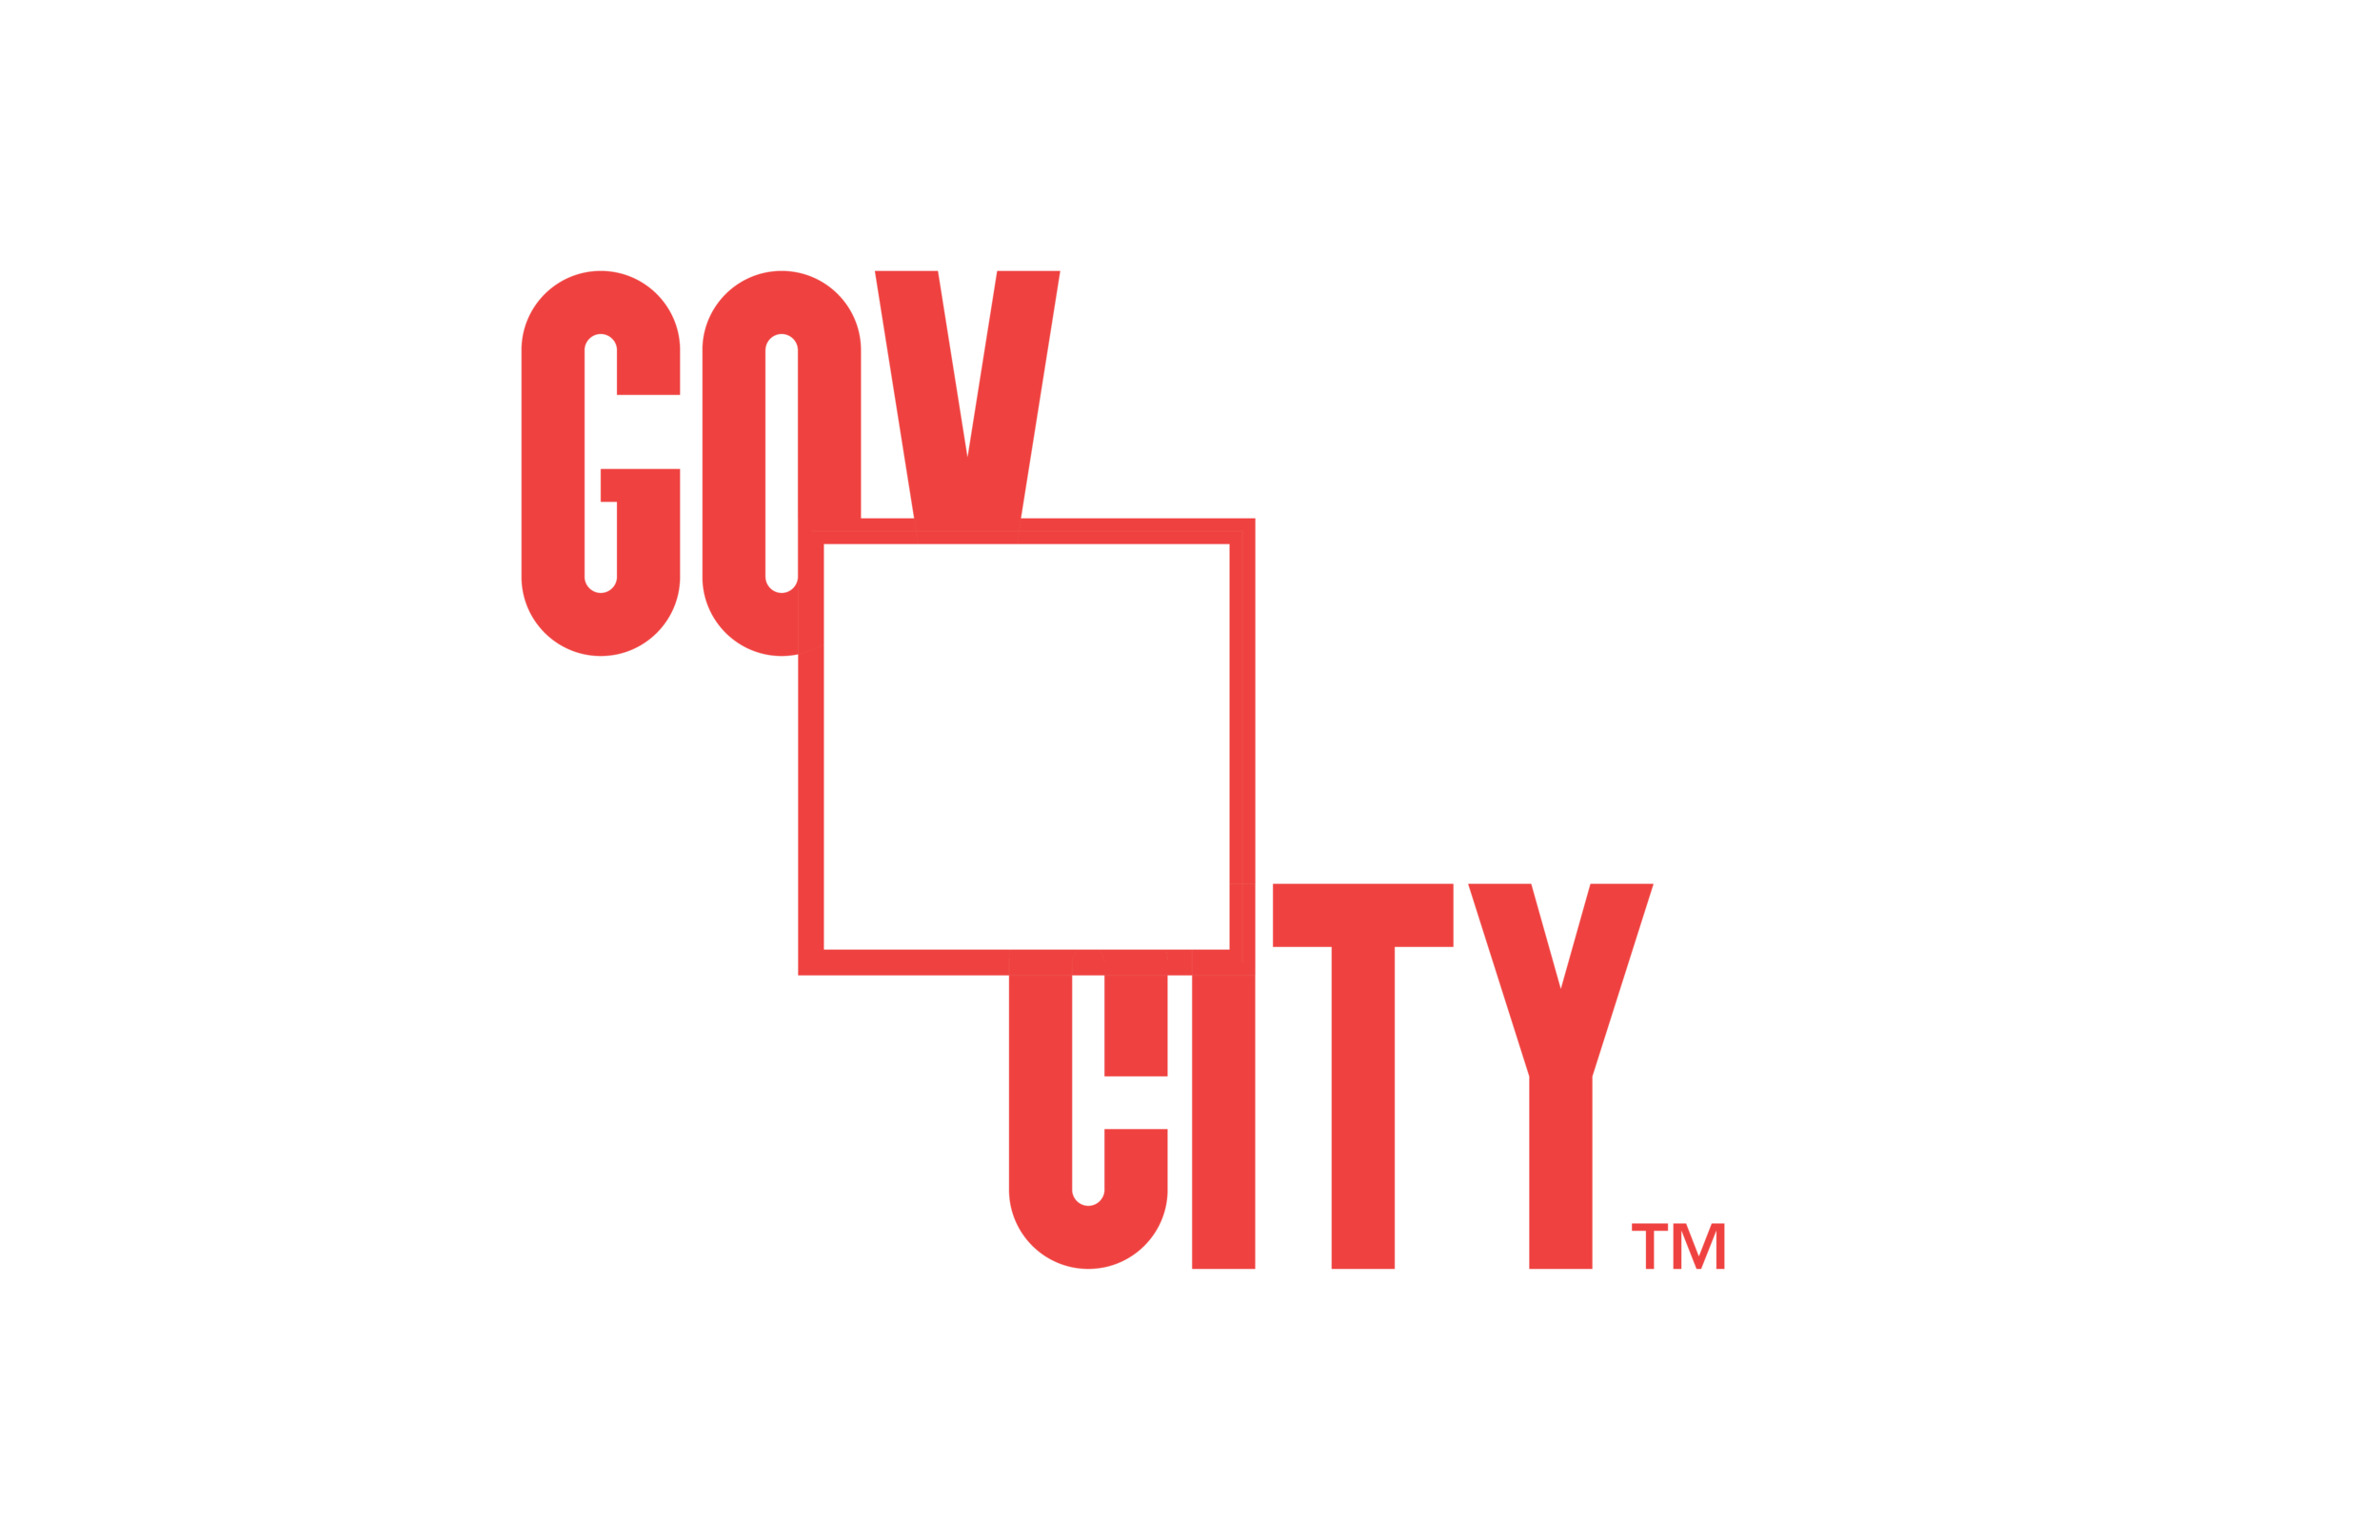 PILOT PACKAGE  This is for the organization that's ready to publicly support an initiative like GovCity, but still needs a bit more proof to be all in with us. If you're wishing to experience GovCity for the first time without too much risk, but enough buy-in to matter, then this one is for you. Consider this a pilot experiment for your organization as you experiment to see what happens when you team up with us. Let's see what kind of trouble (within legal and ethical permissions of course) we can drum up, shall we?  Up to $8,000.